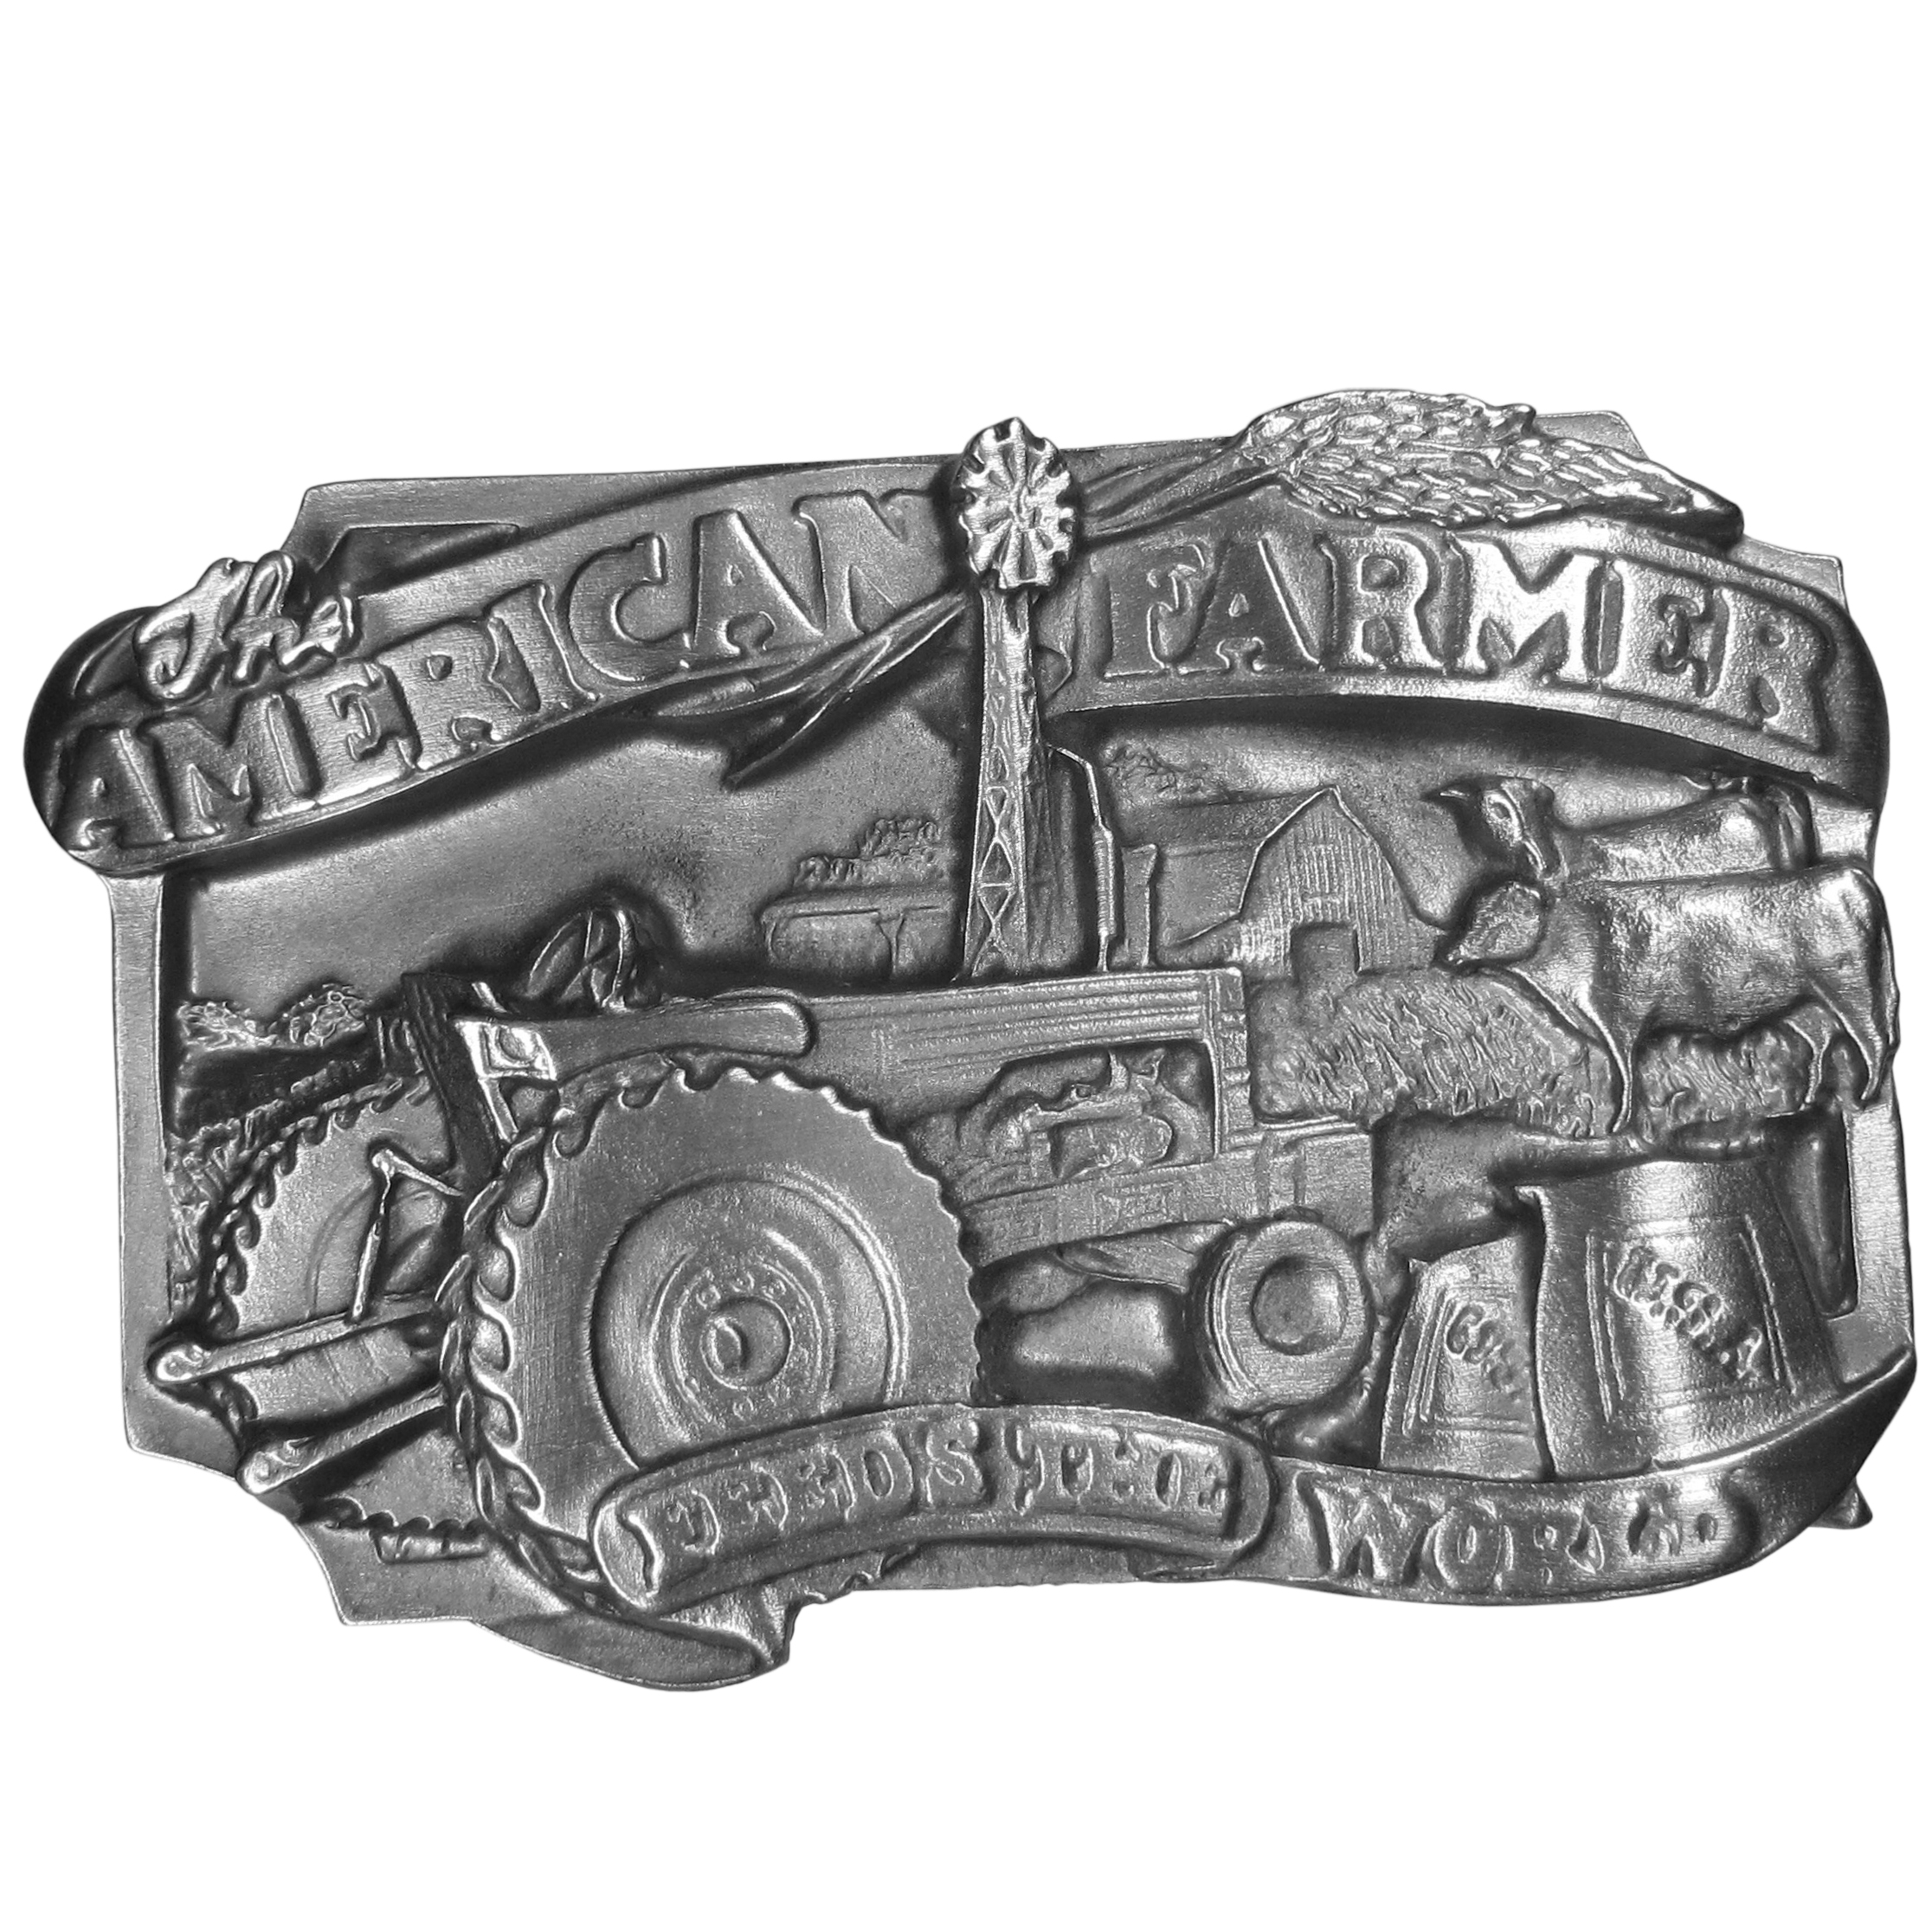 """American Farmer Antiqued Belt Buckle - This beautifully carved image has the words """"The American Farmer"""" on a banner across the top and Feeds The World on a banner on the bottom. Images of a tractor, a windmill, a barn, two cows, """"USA"""" grain bags and a farm are in the center of this exquisite buckle.This antiqued buckle is made of fully cast metal with a standard bale that fits up to 2"""" belts. Siskiyou's unique buckle designs often become collector's items and are unequaled in craftsmanship."""